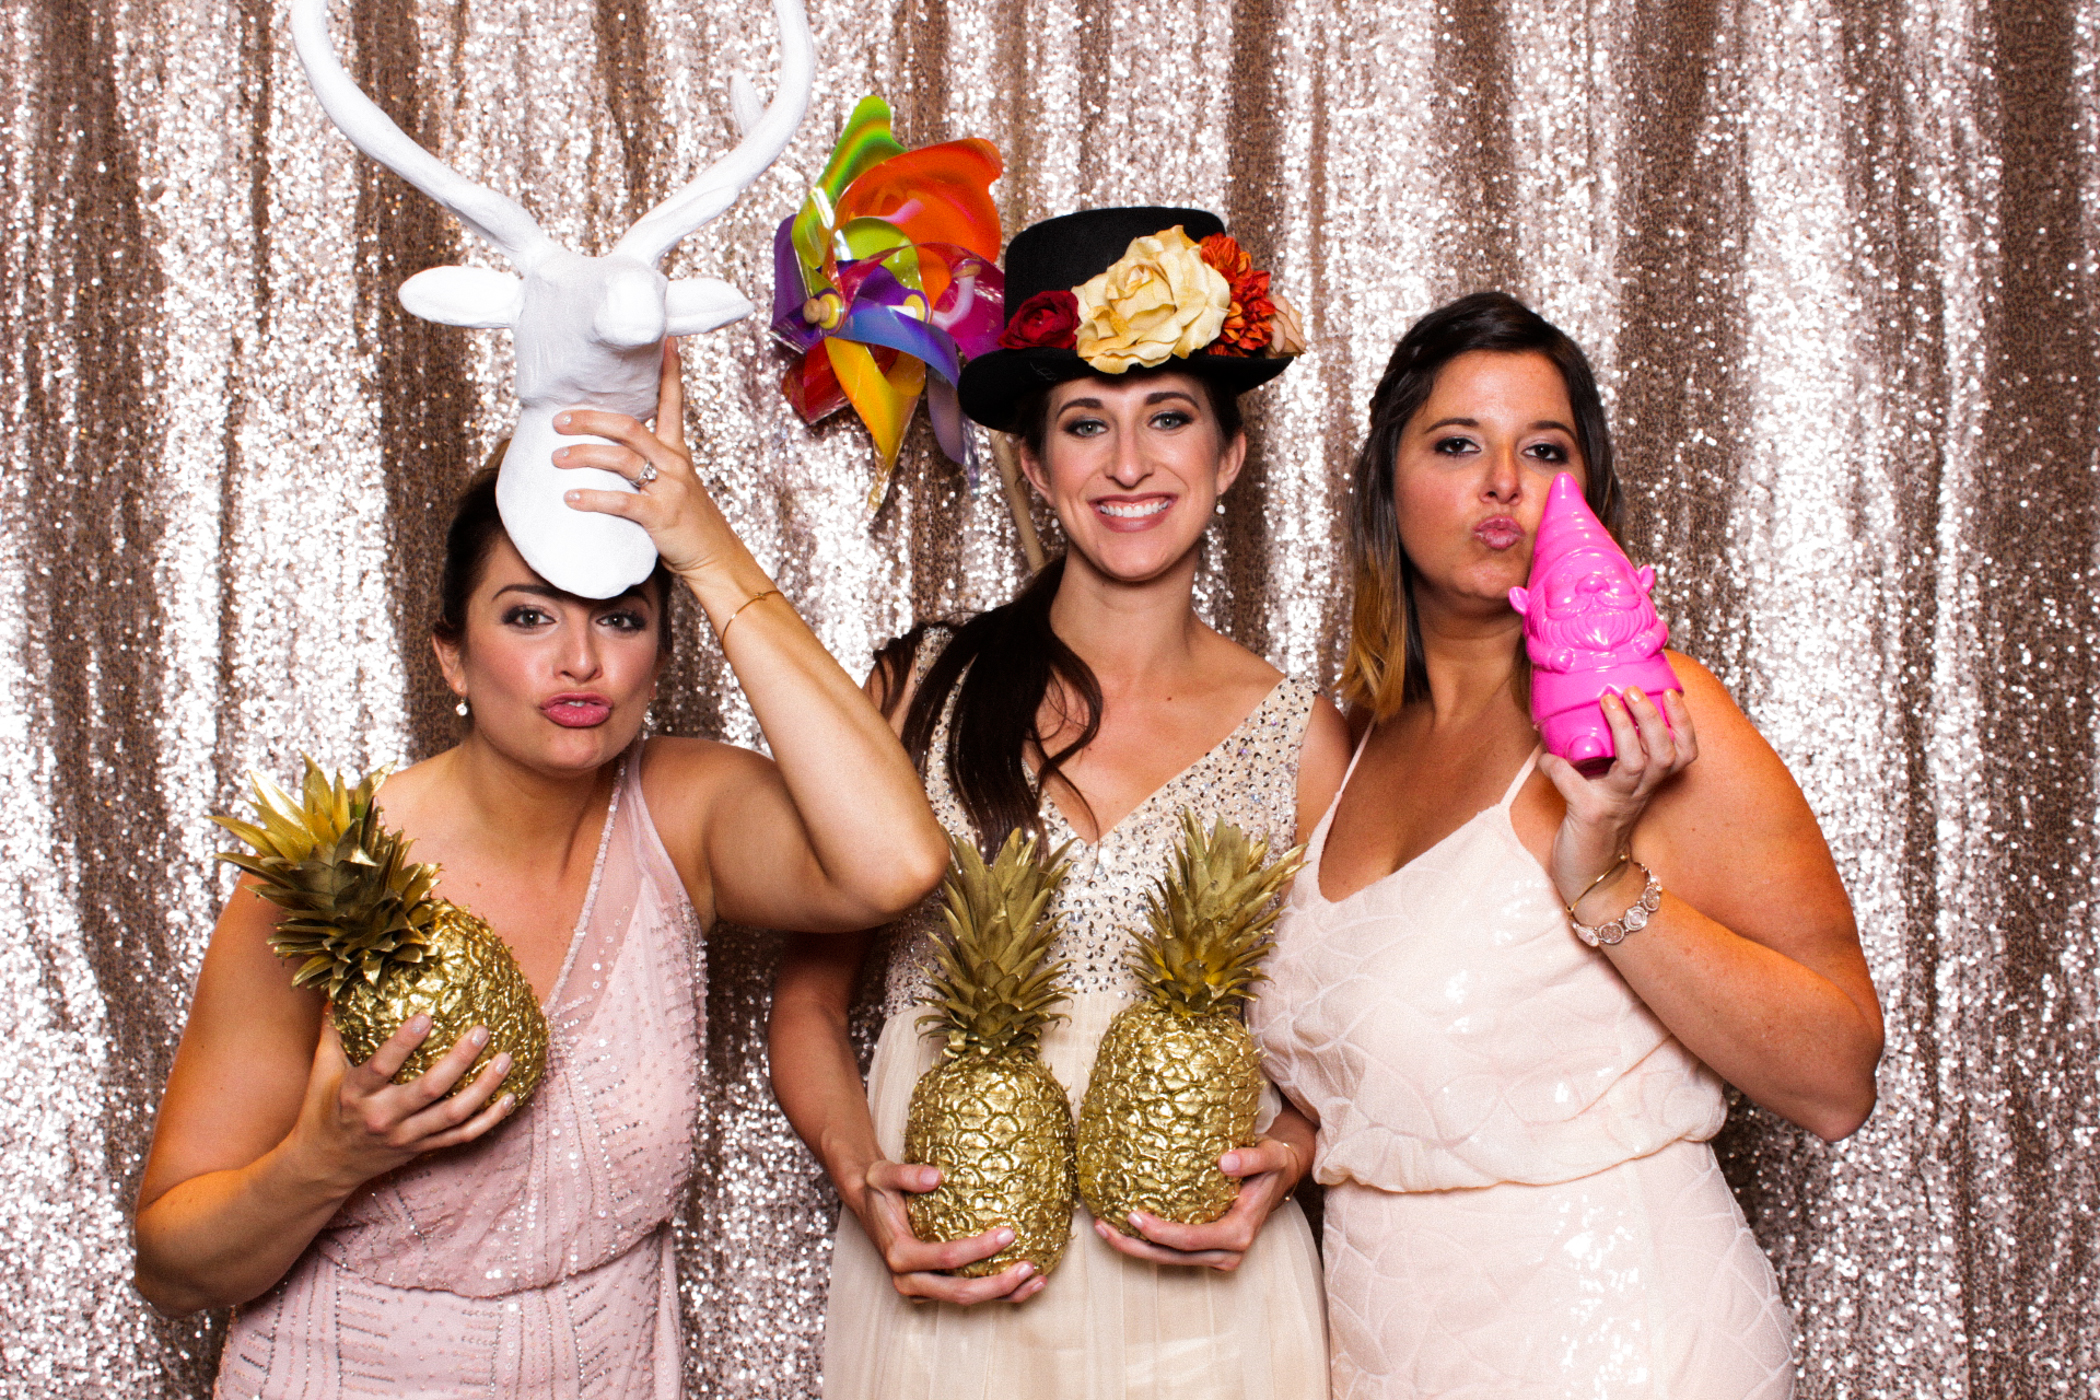 The_Reverie_Booth-Boca_Raton_Photobooth-Wedding_Photobooth_Florida-Florida_Photobooth_Rental-Wedding_Photobooth-054.jpg